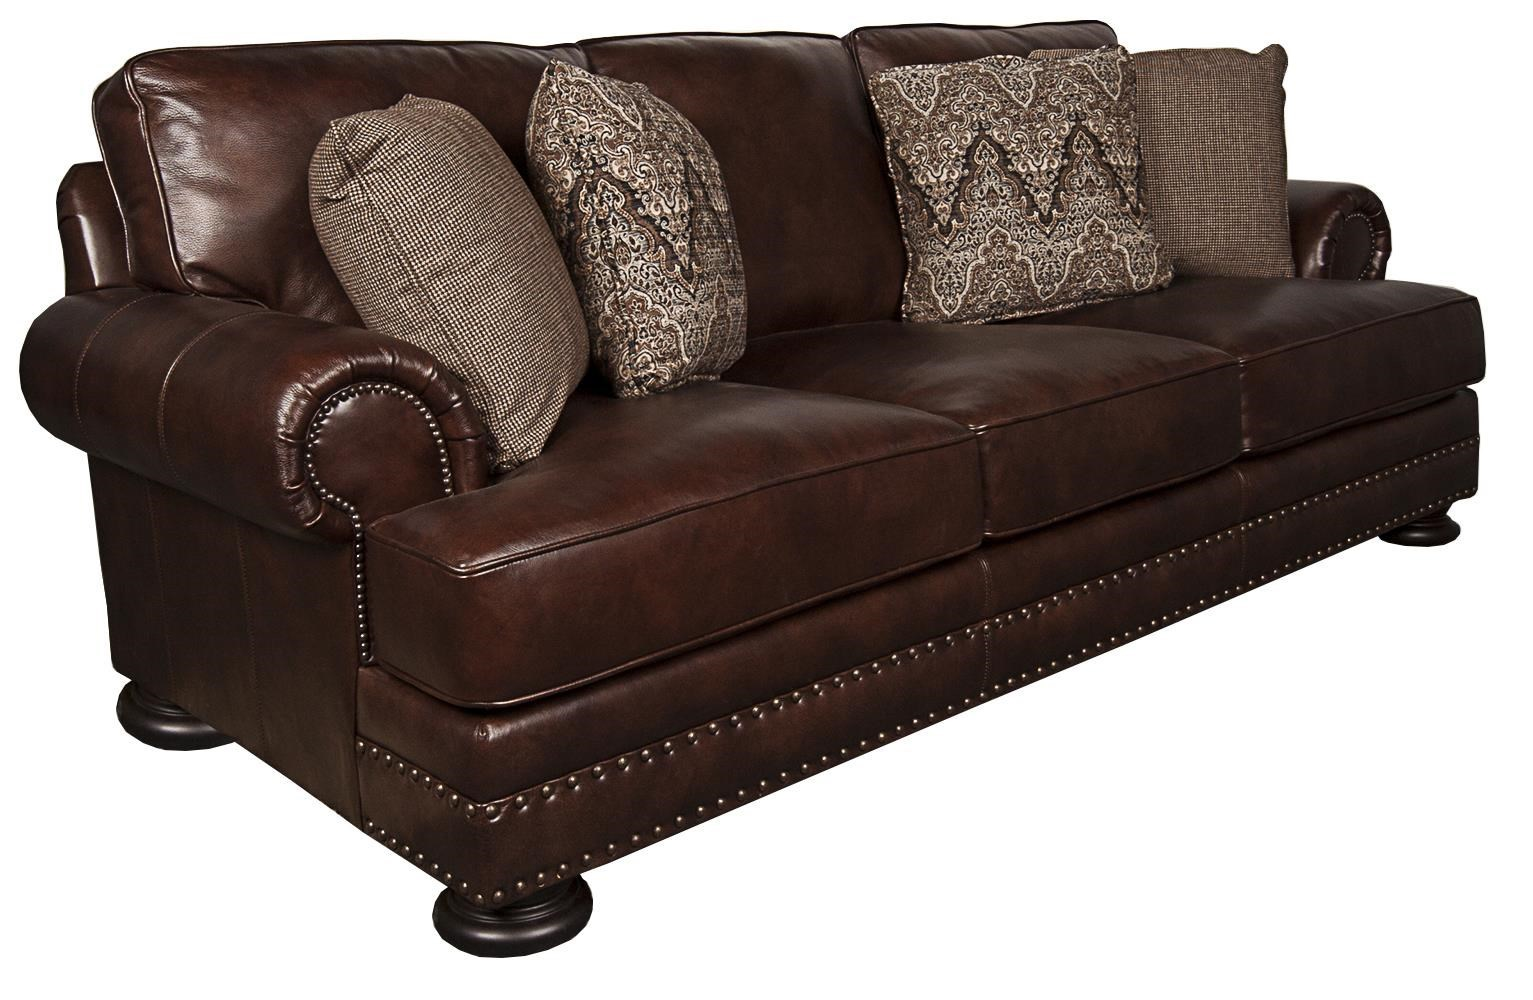 100 real leather corner sofa cleaning fabric stains sofas baron chair by italia top